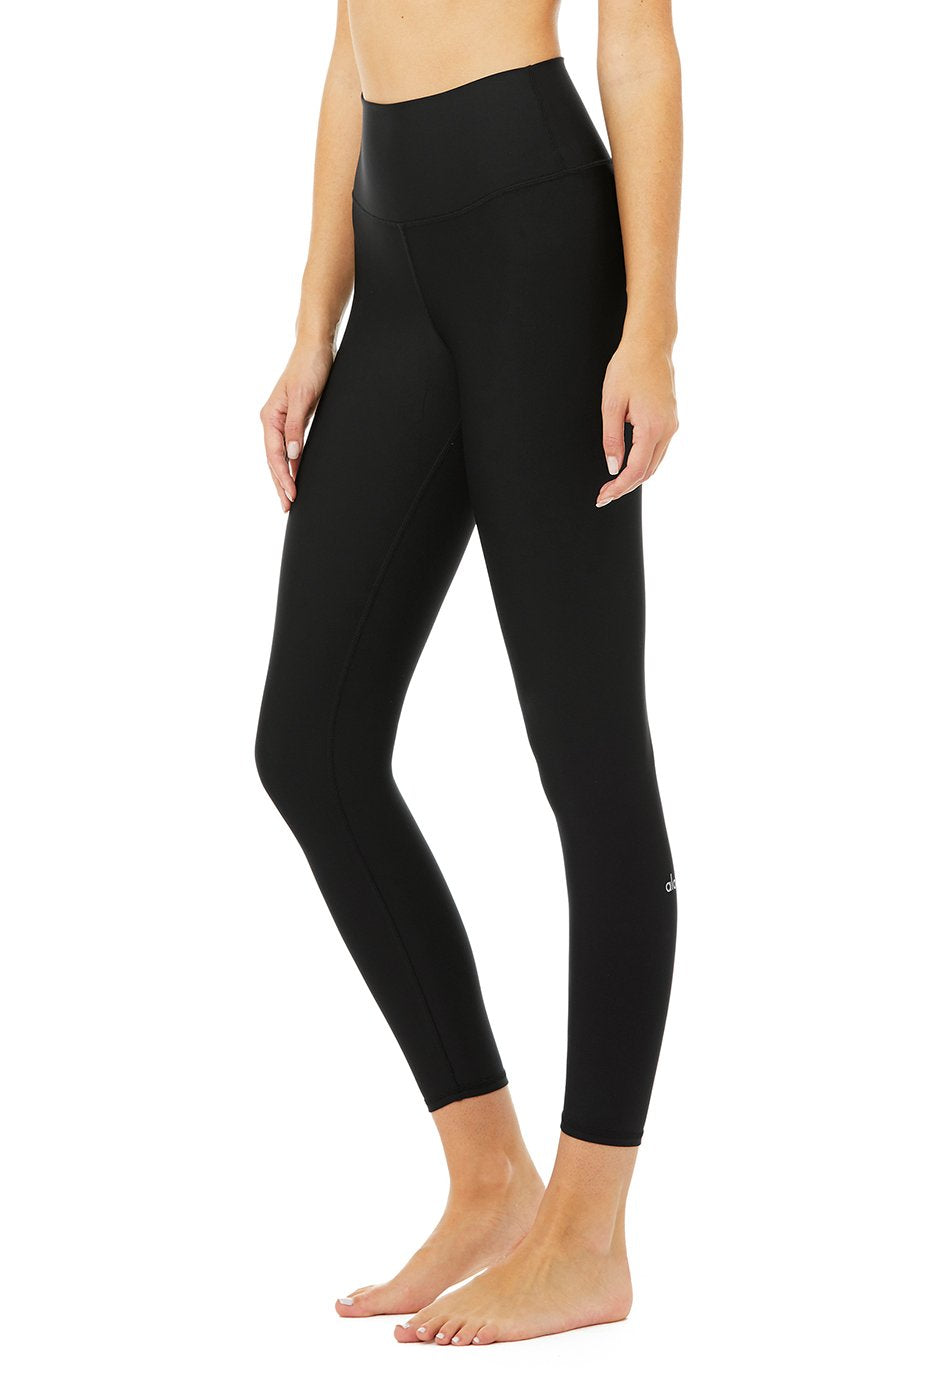 ALO 7/8 HIGH WAIST AIRLIFT LEGGING IN BLACK